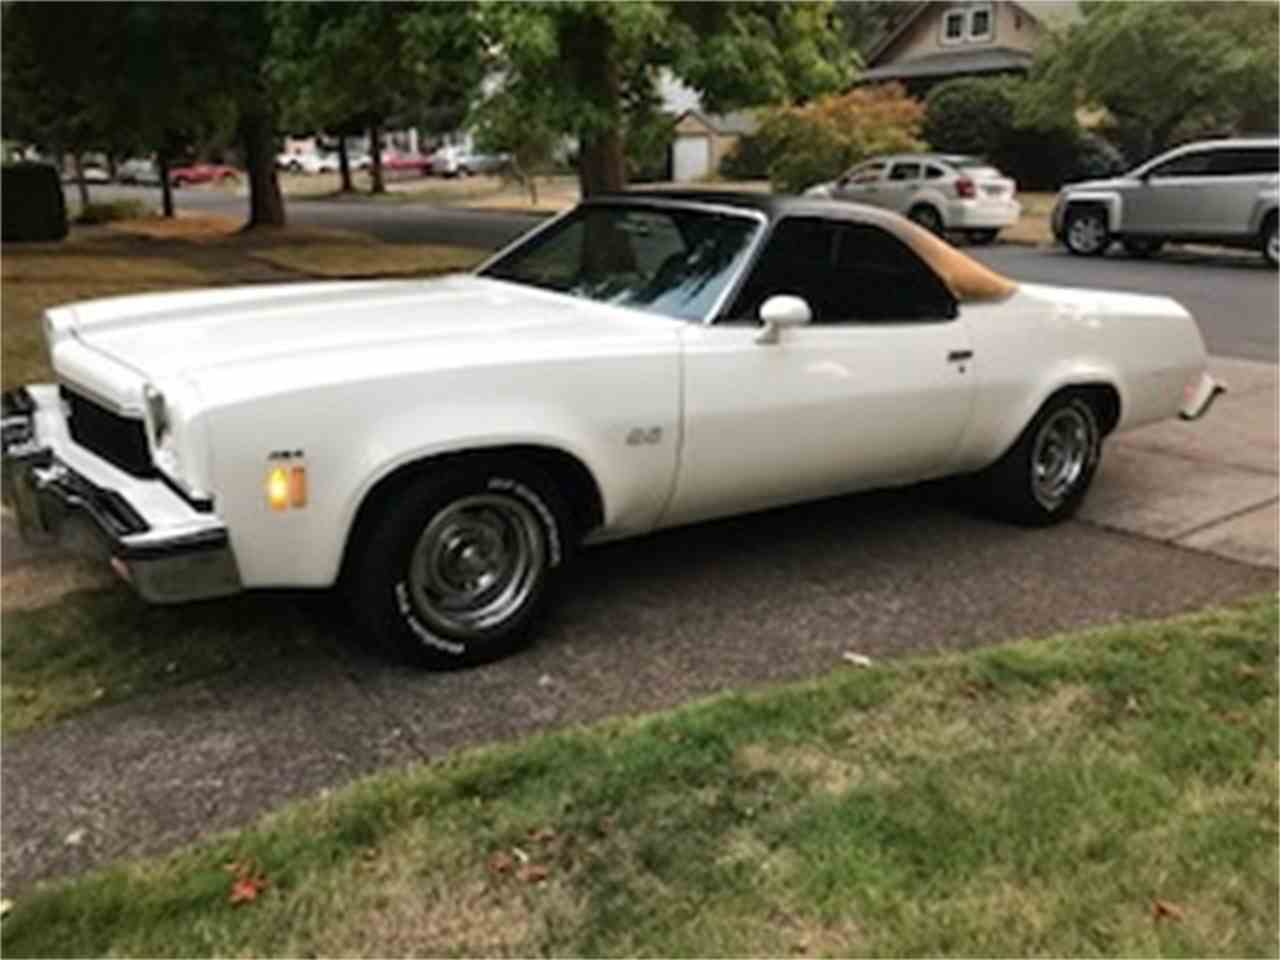 All Chevy 1976 chevy el camino : 1973 to 1975 Chevrolet El Camino for Sale on ClassicCars.com